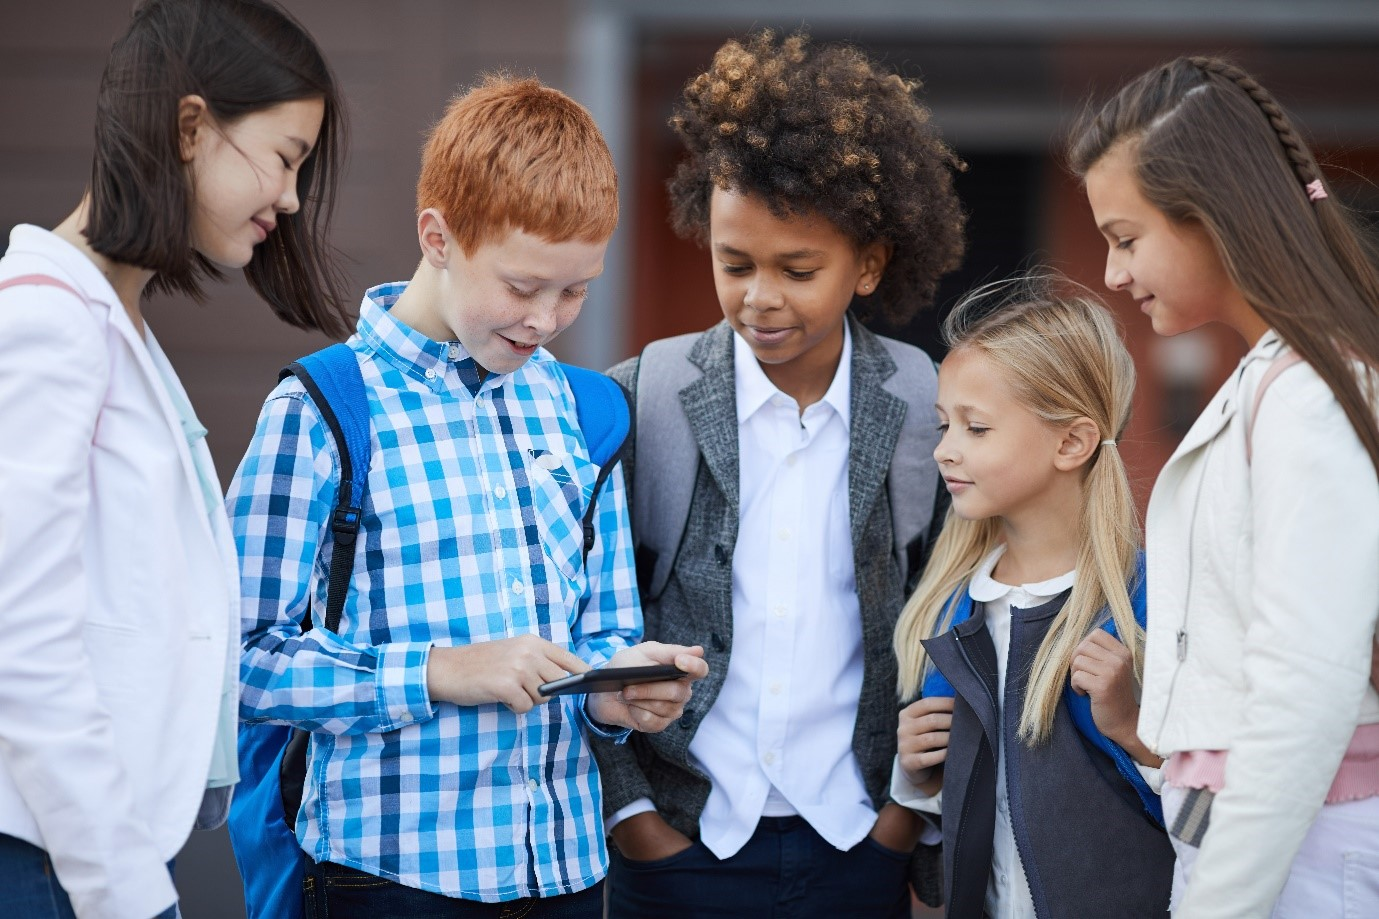 A group of four children crowd round a child with a mobile phone and look at the screen